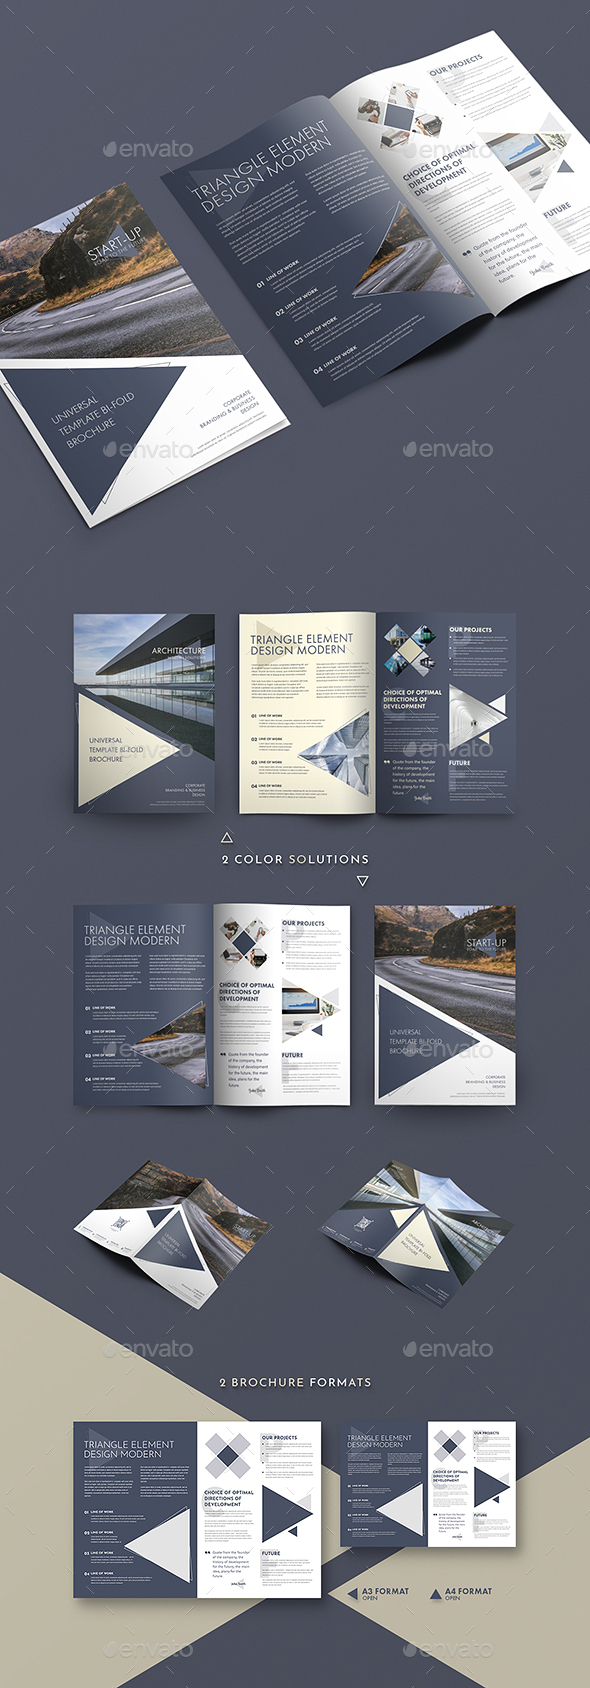 Modern Design Bi-Fold Brochure With Triangular Elements - Brochures Print Templates